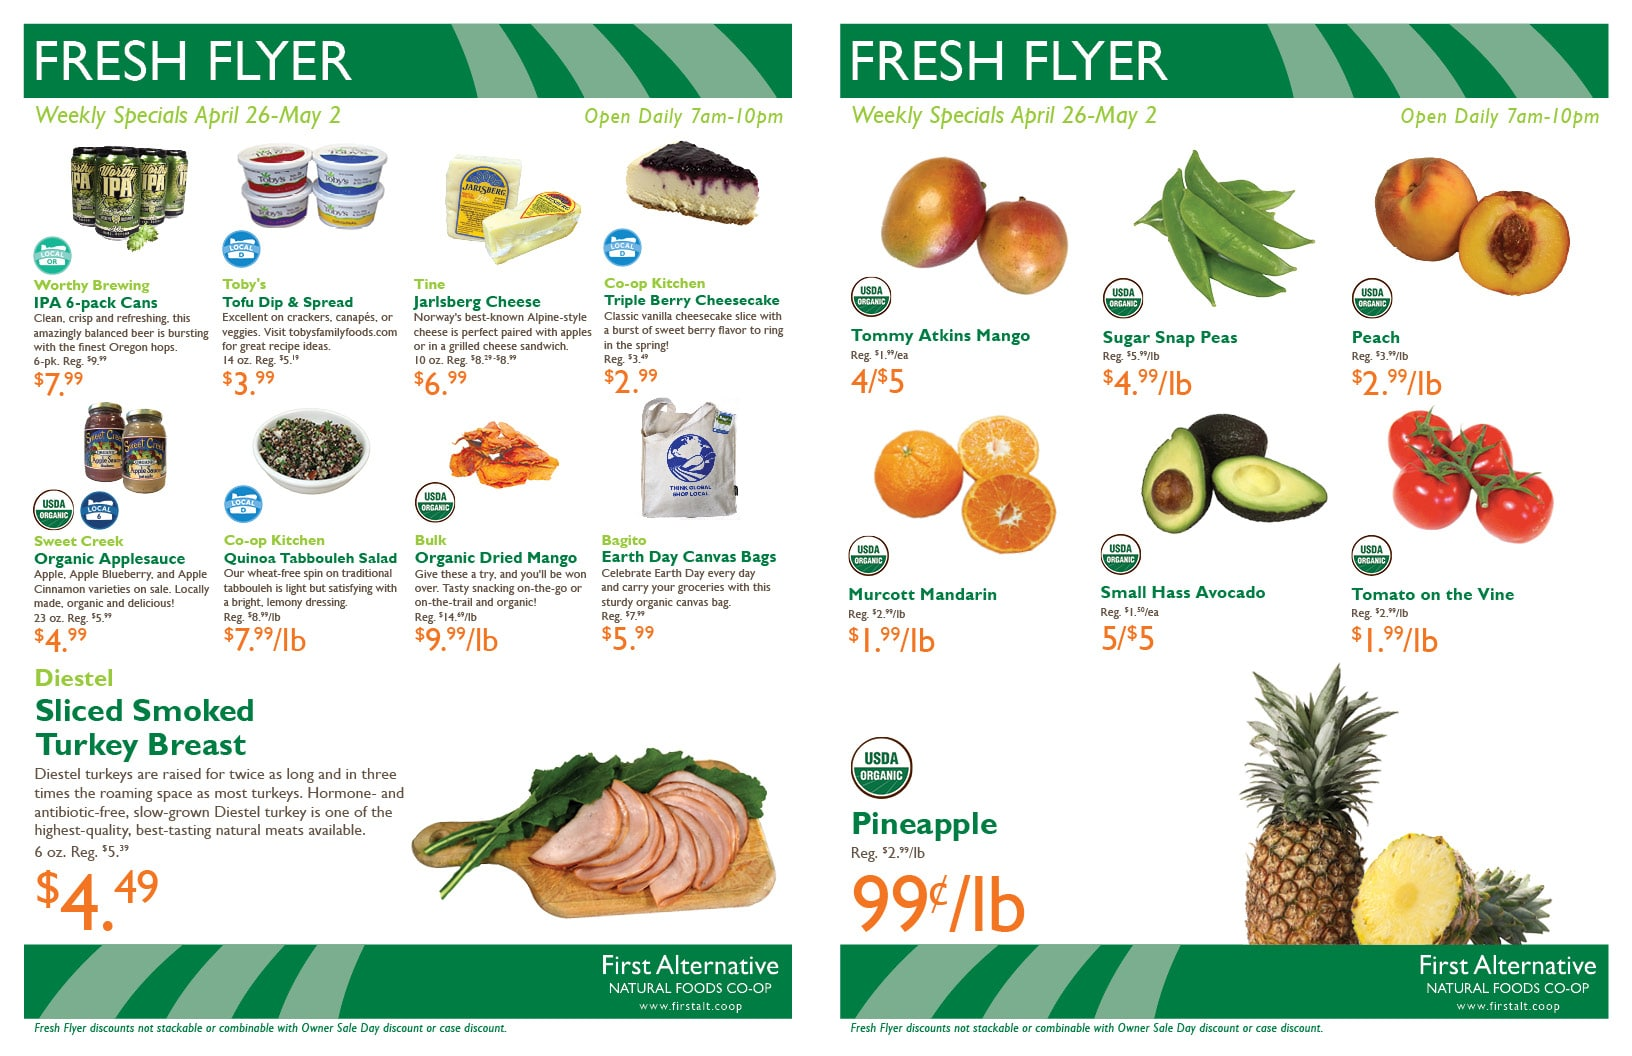 First Alternative Fresh Flyer Apr 26-May 2